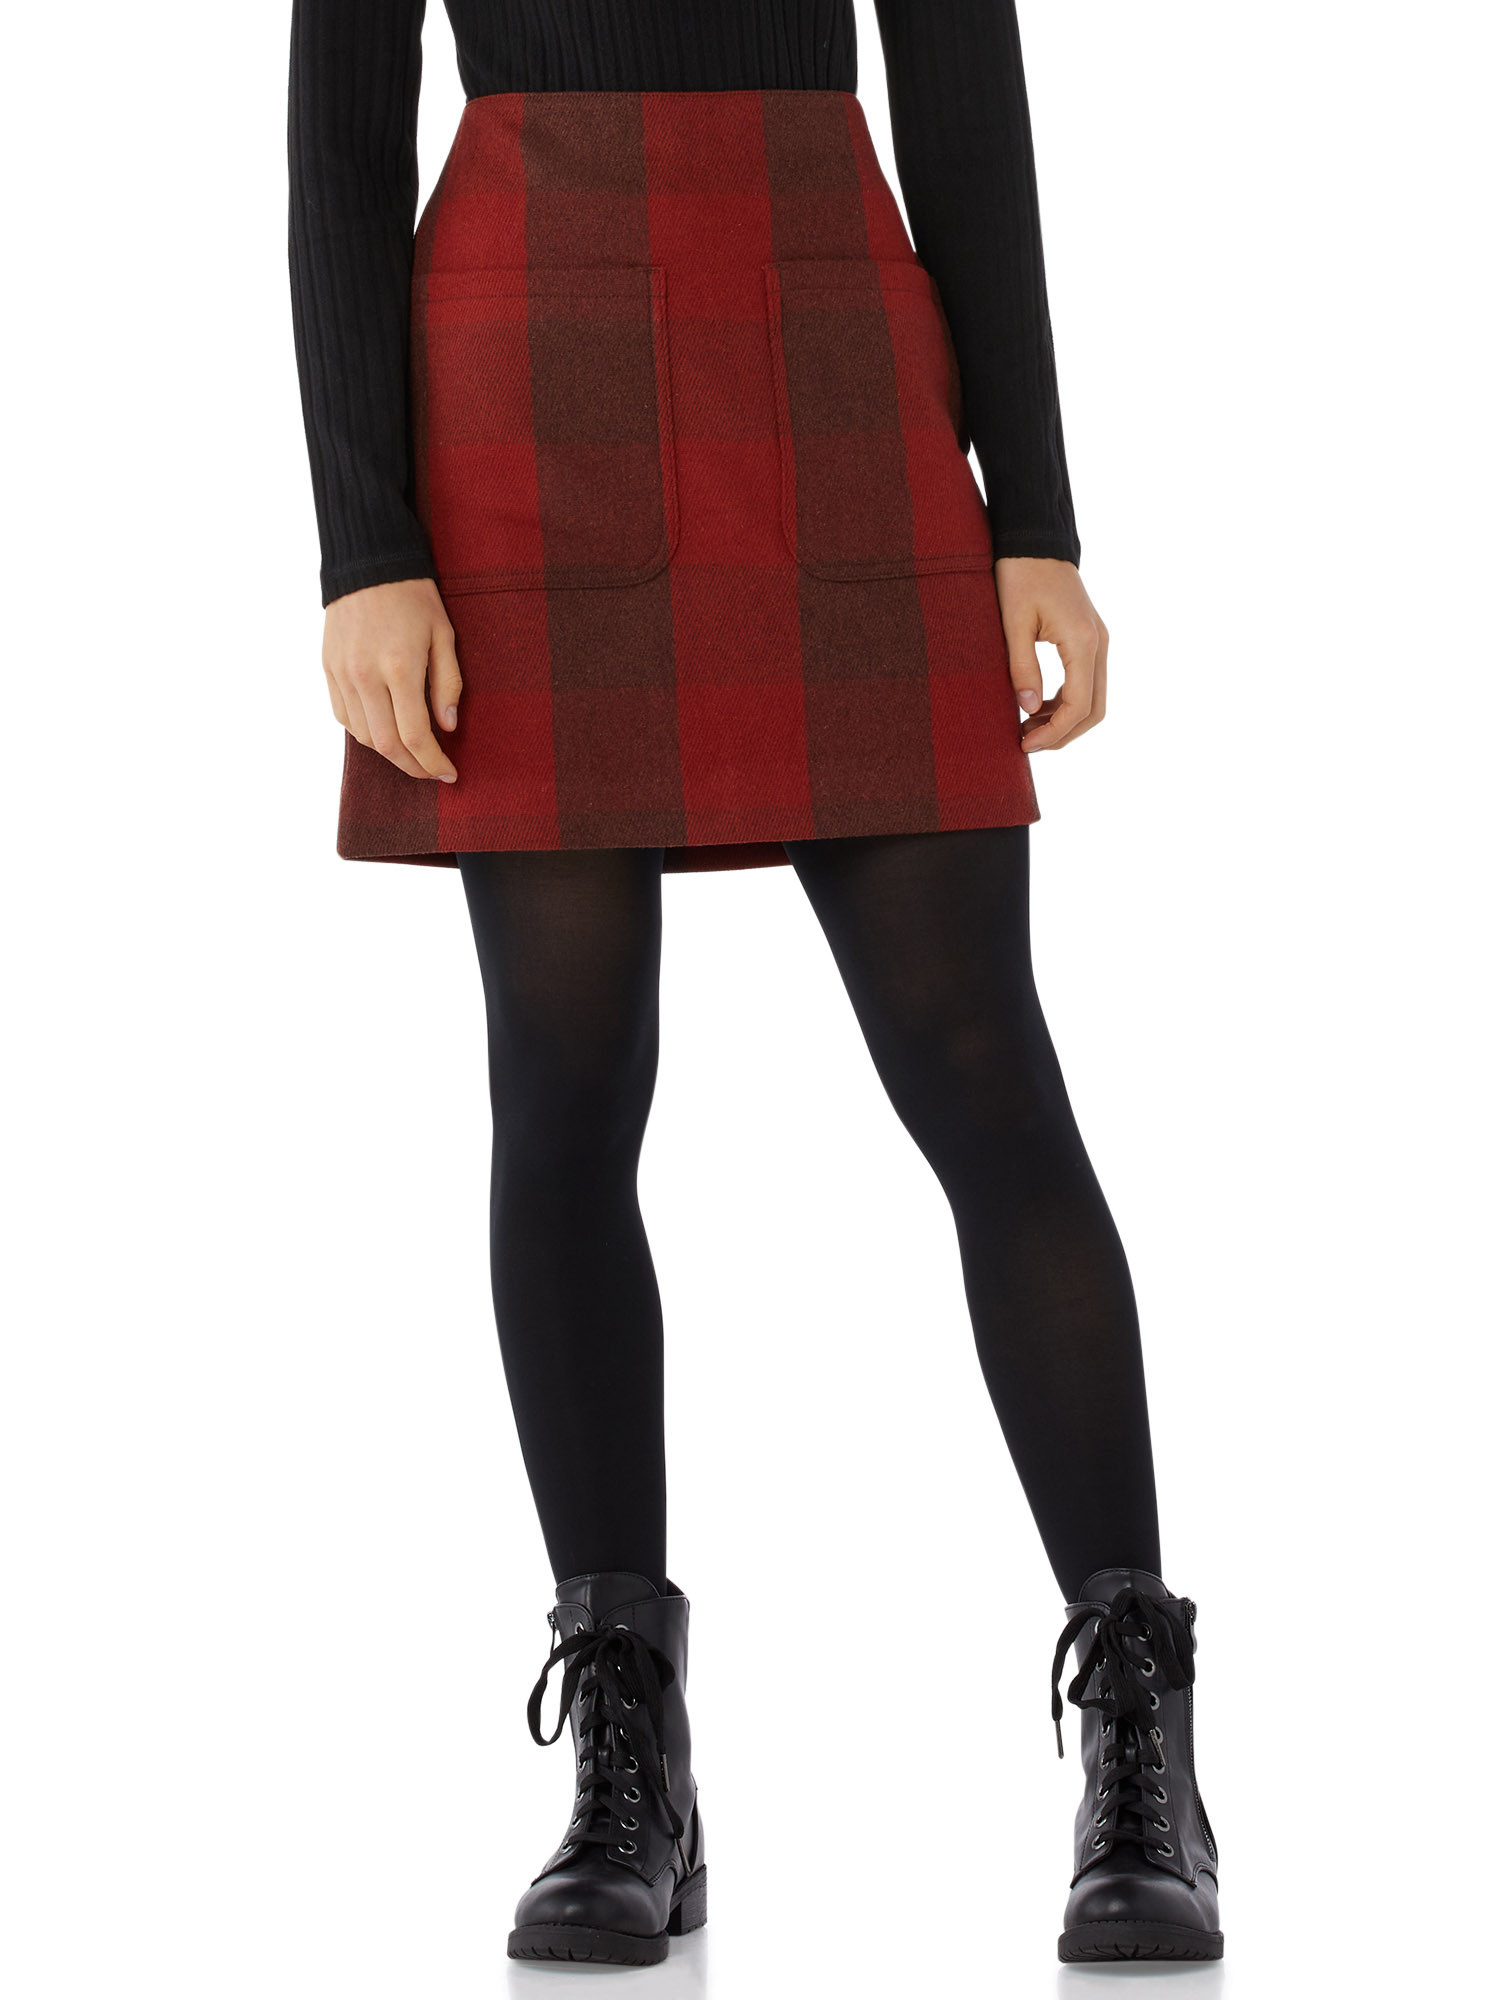 Model wearing a red plaid skirt